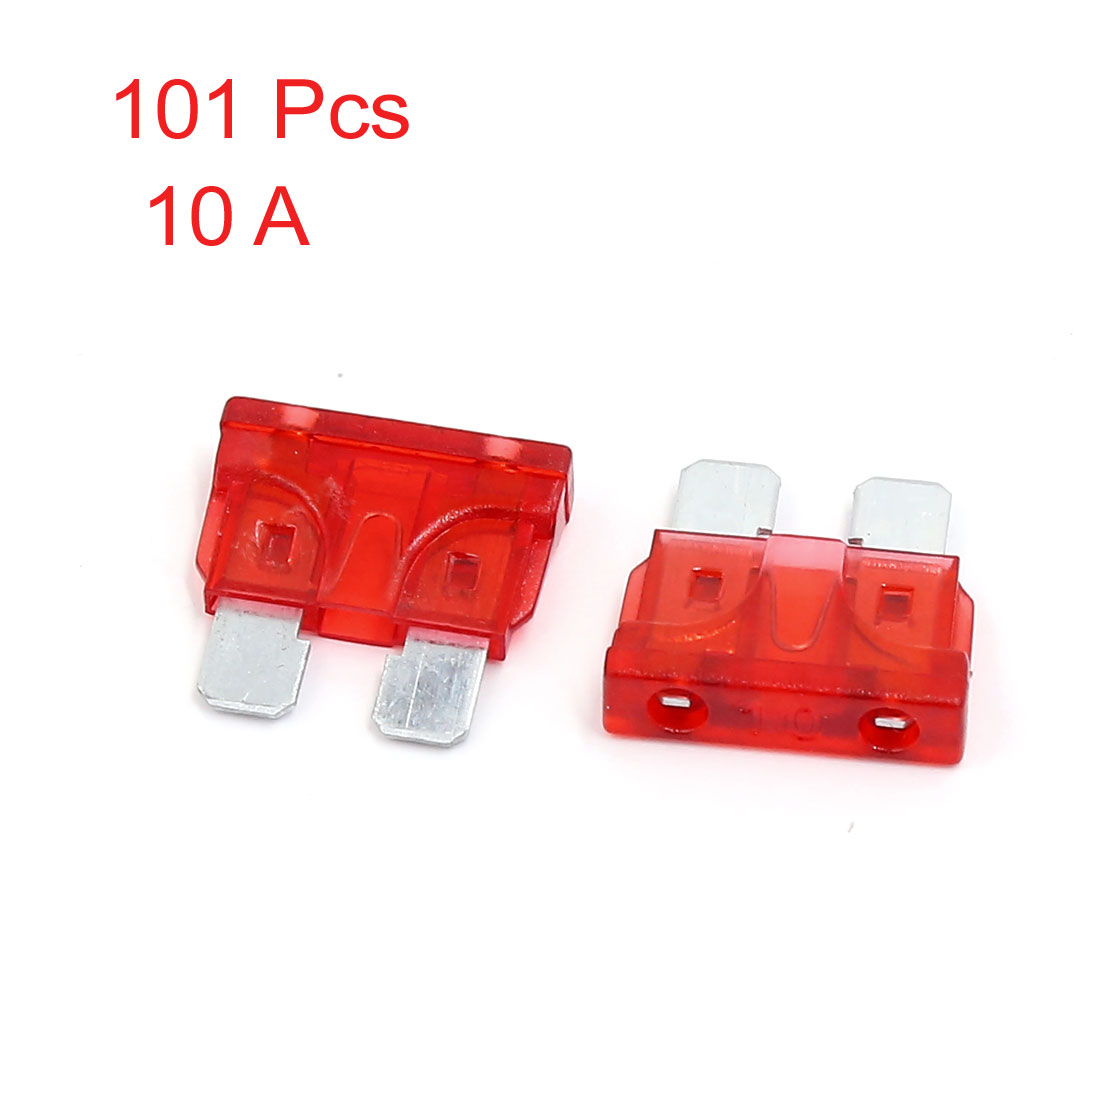 X Autohaux Auto Car Caravan Truck Suv Boat Atc Xenon Lamp Blade Fuses Red 40a 5pcs Auto Replacement Parts